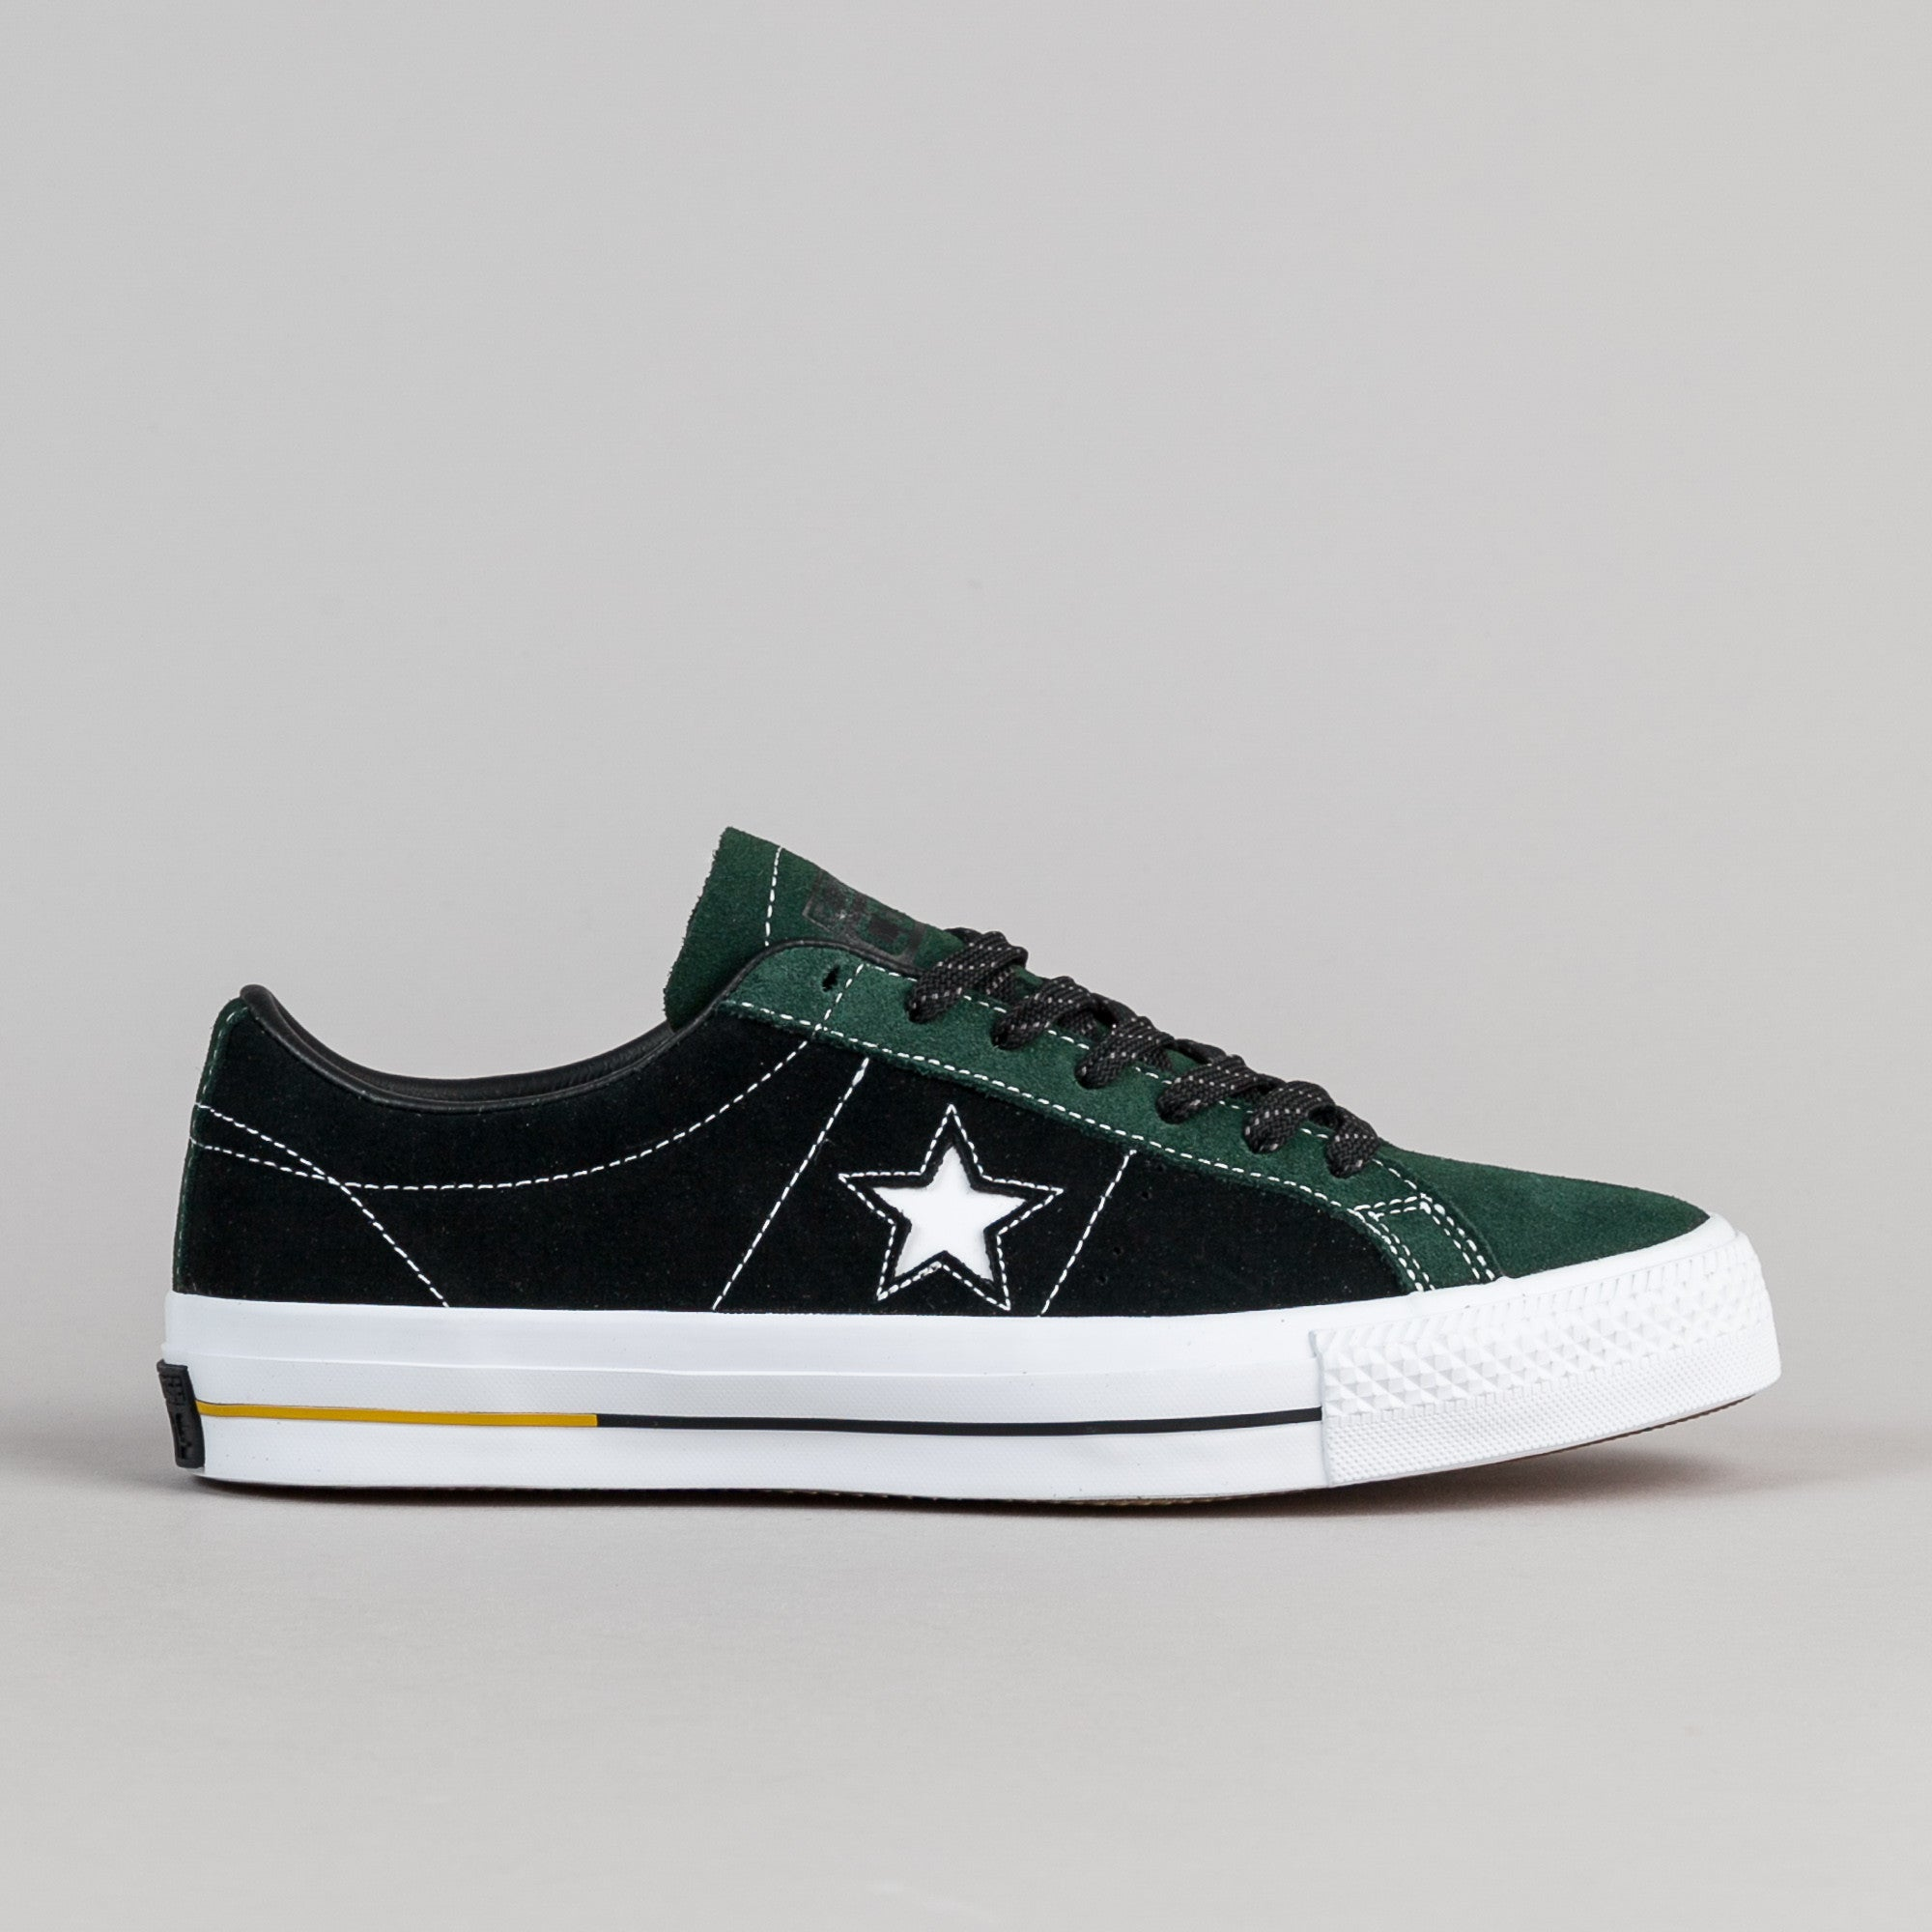 ... Converse One Star Pro Suede OX Shoes - Deep Emerald / Black ...